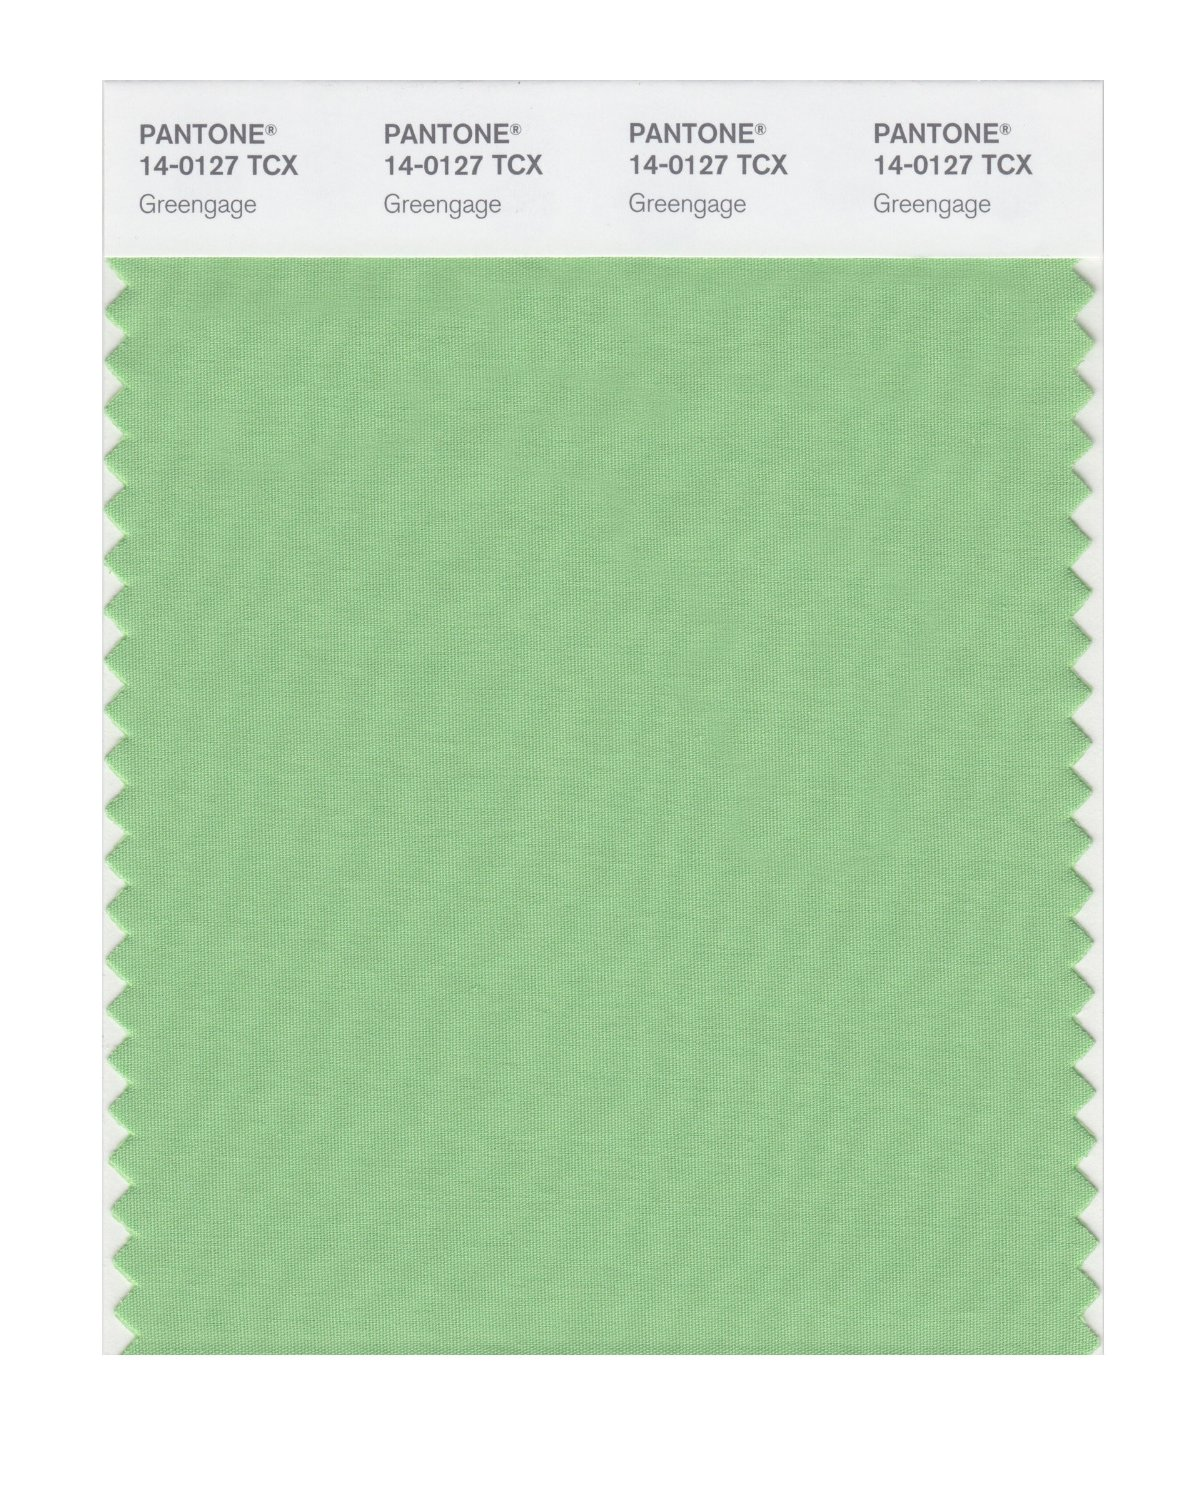 Pantone Smart Swatch 14-0127 Greengage